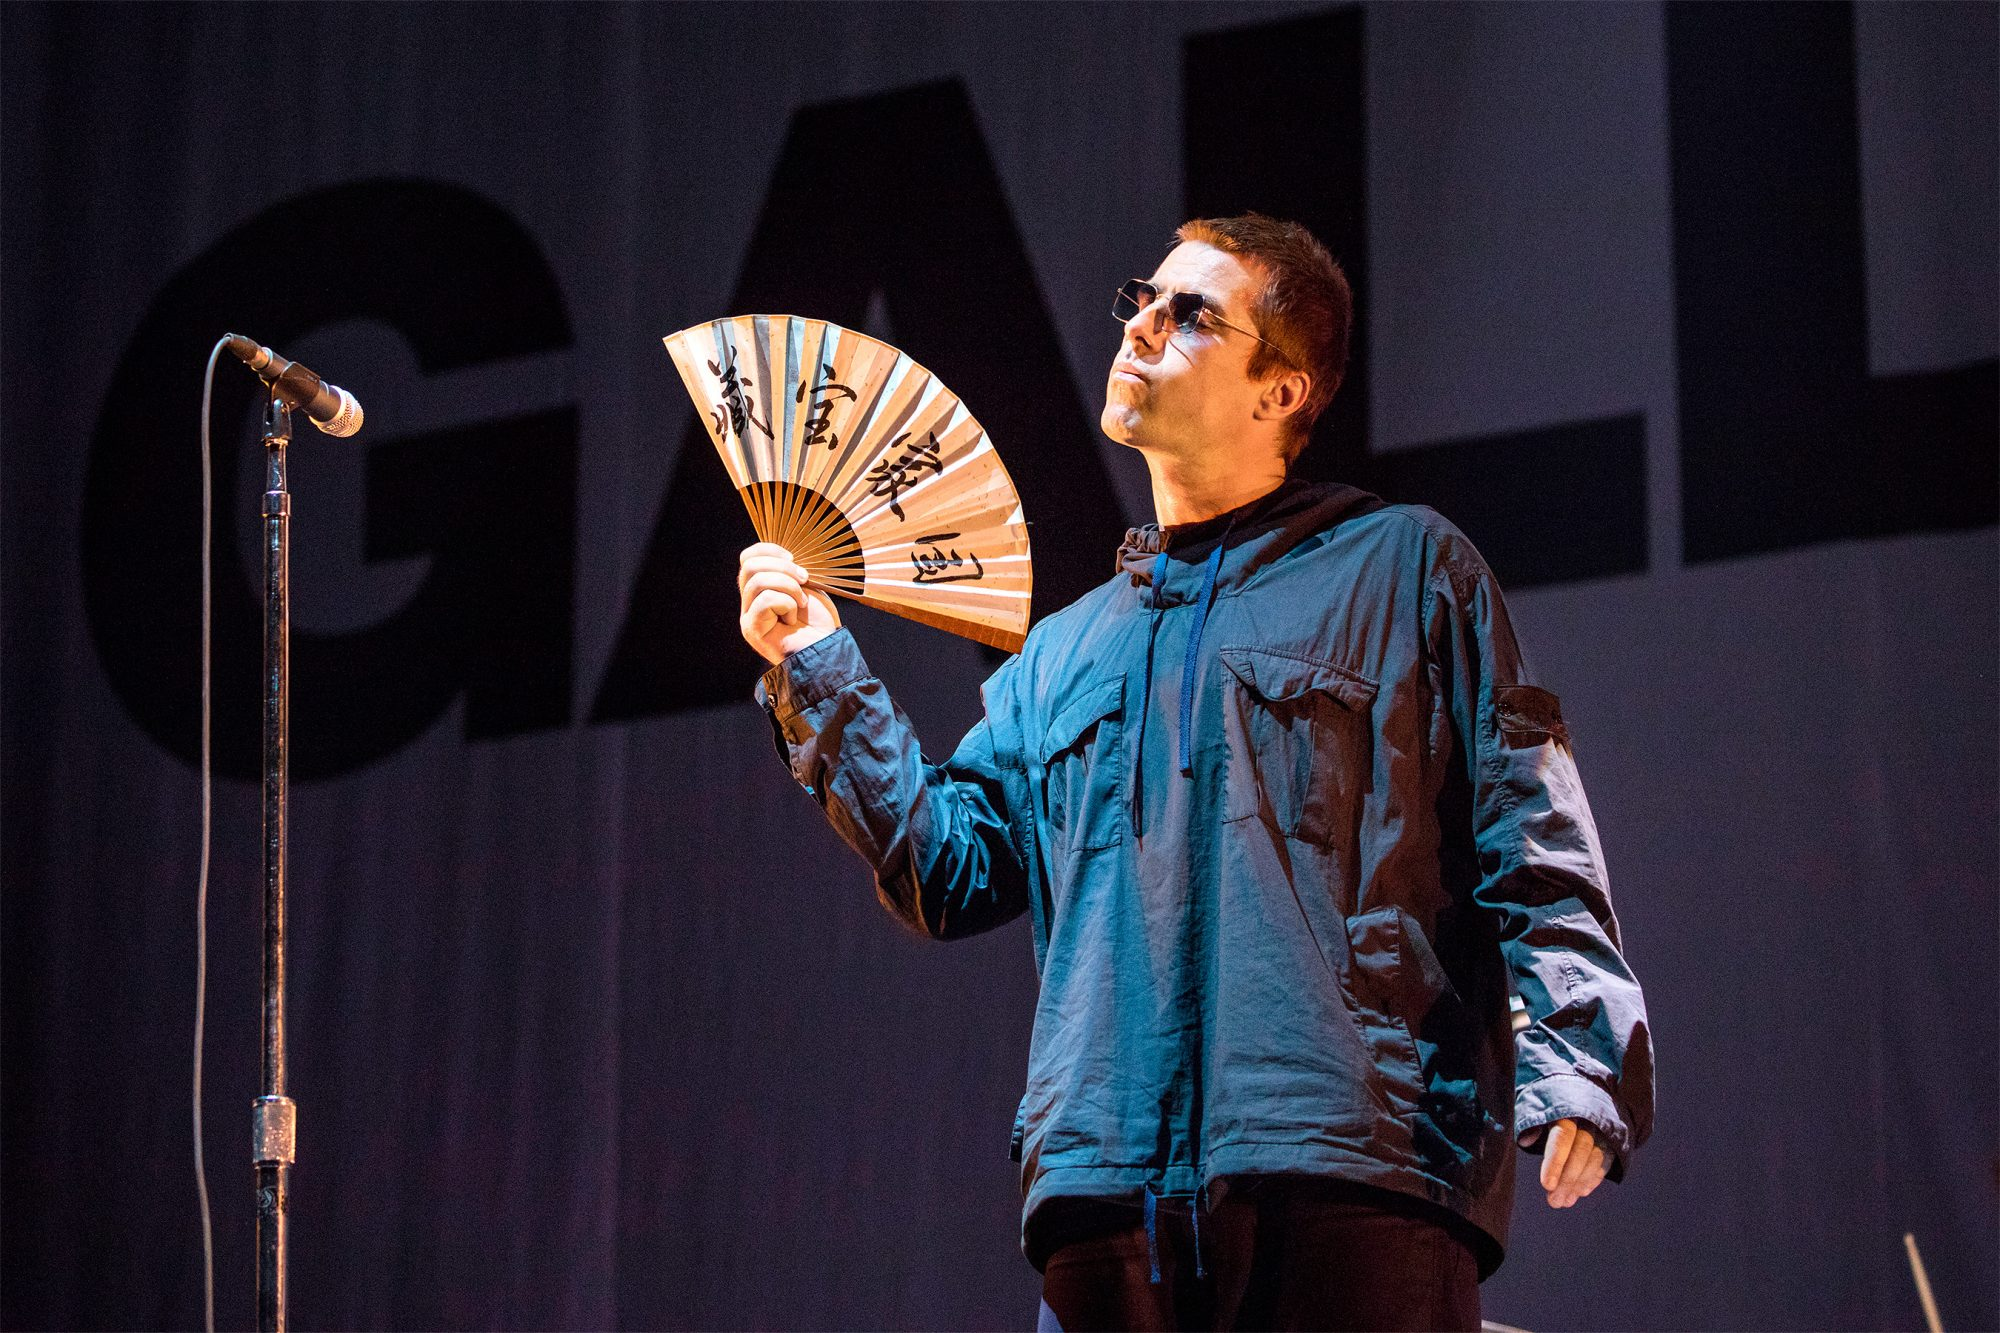 Liam Gallagher Holds Concert In Beijing